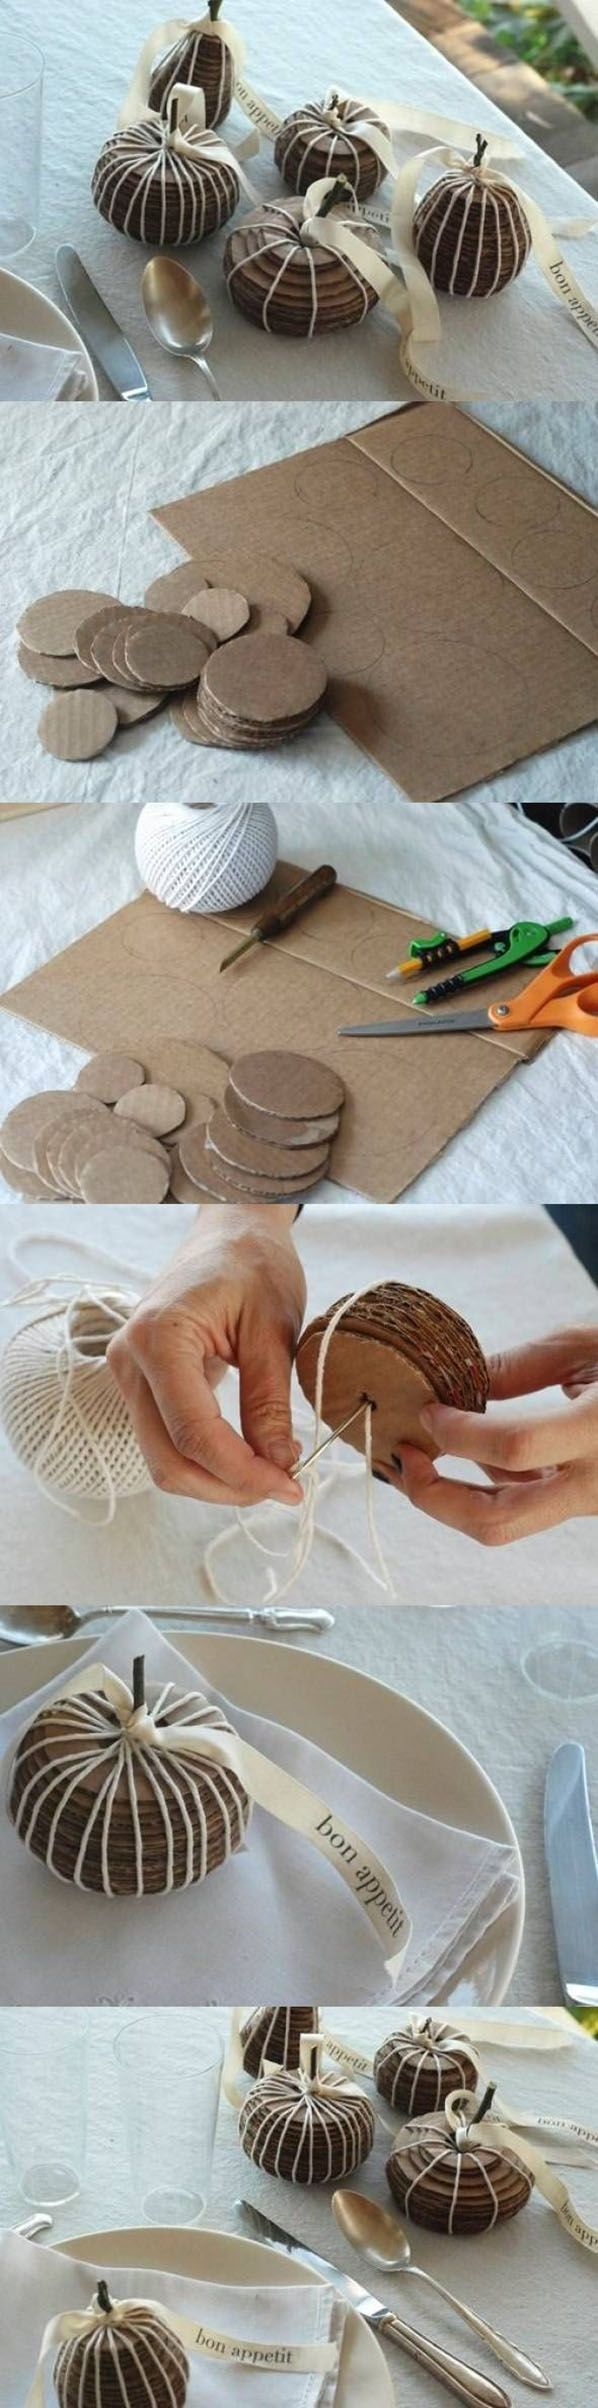 Cool Decoration Idea | DIY & Crafts Tutorials: